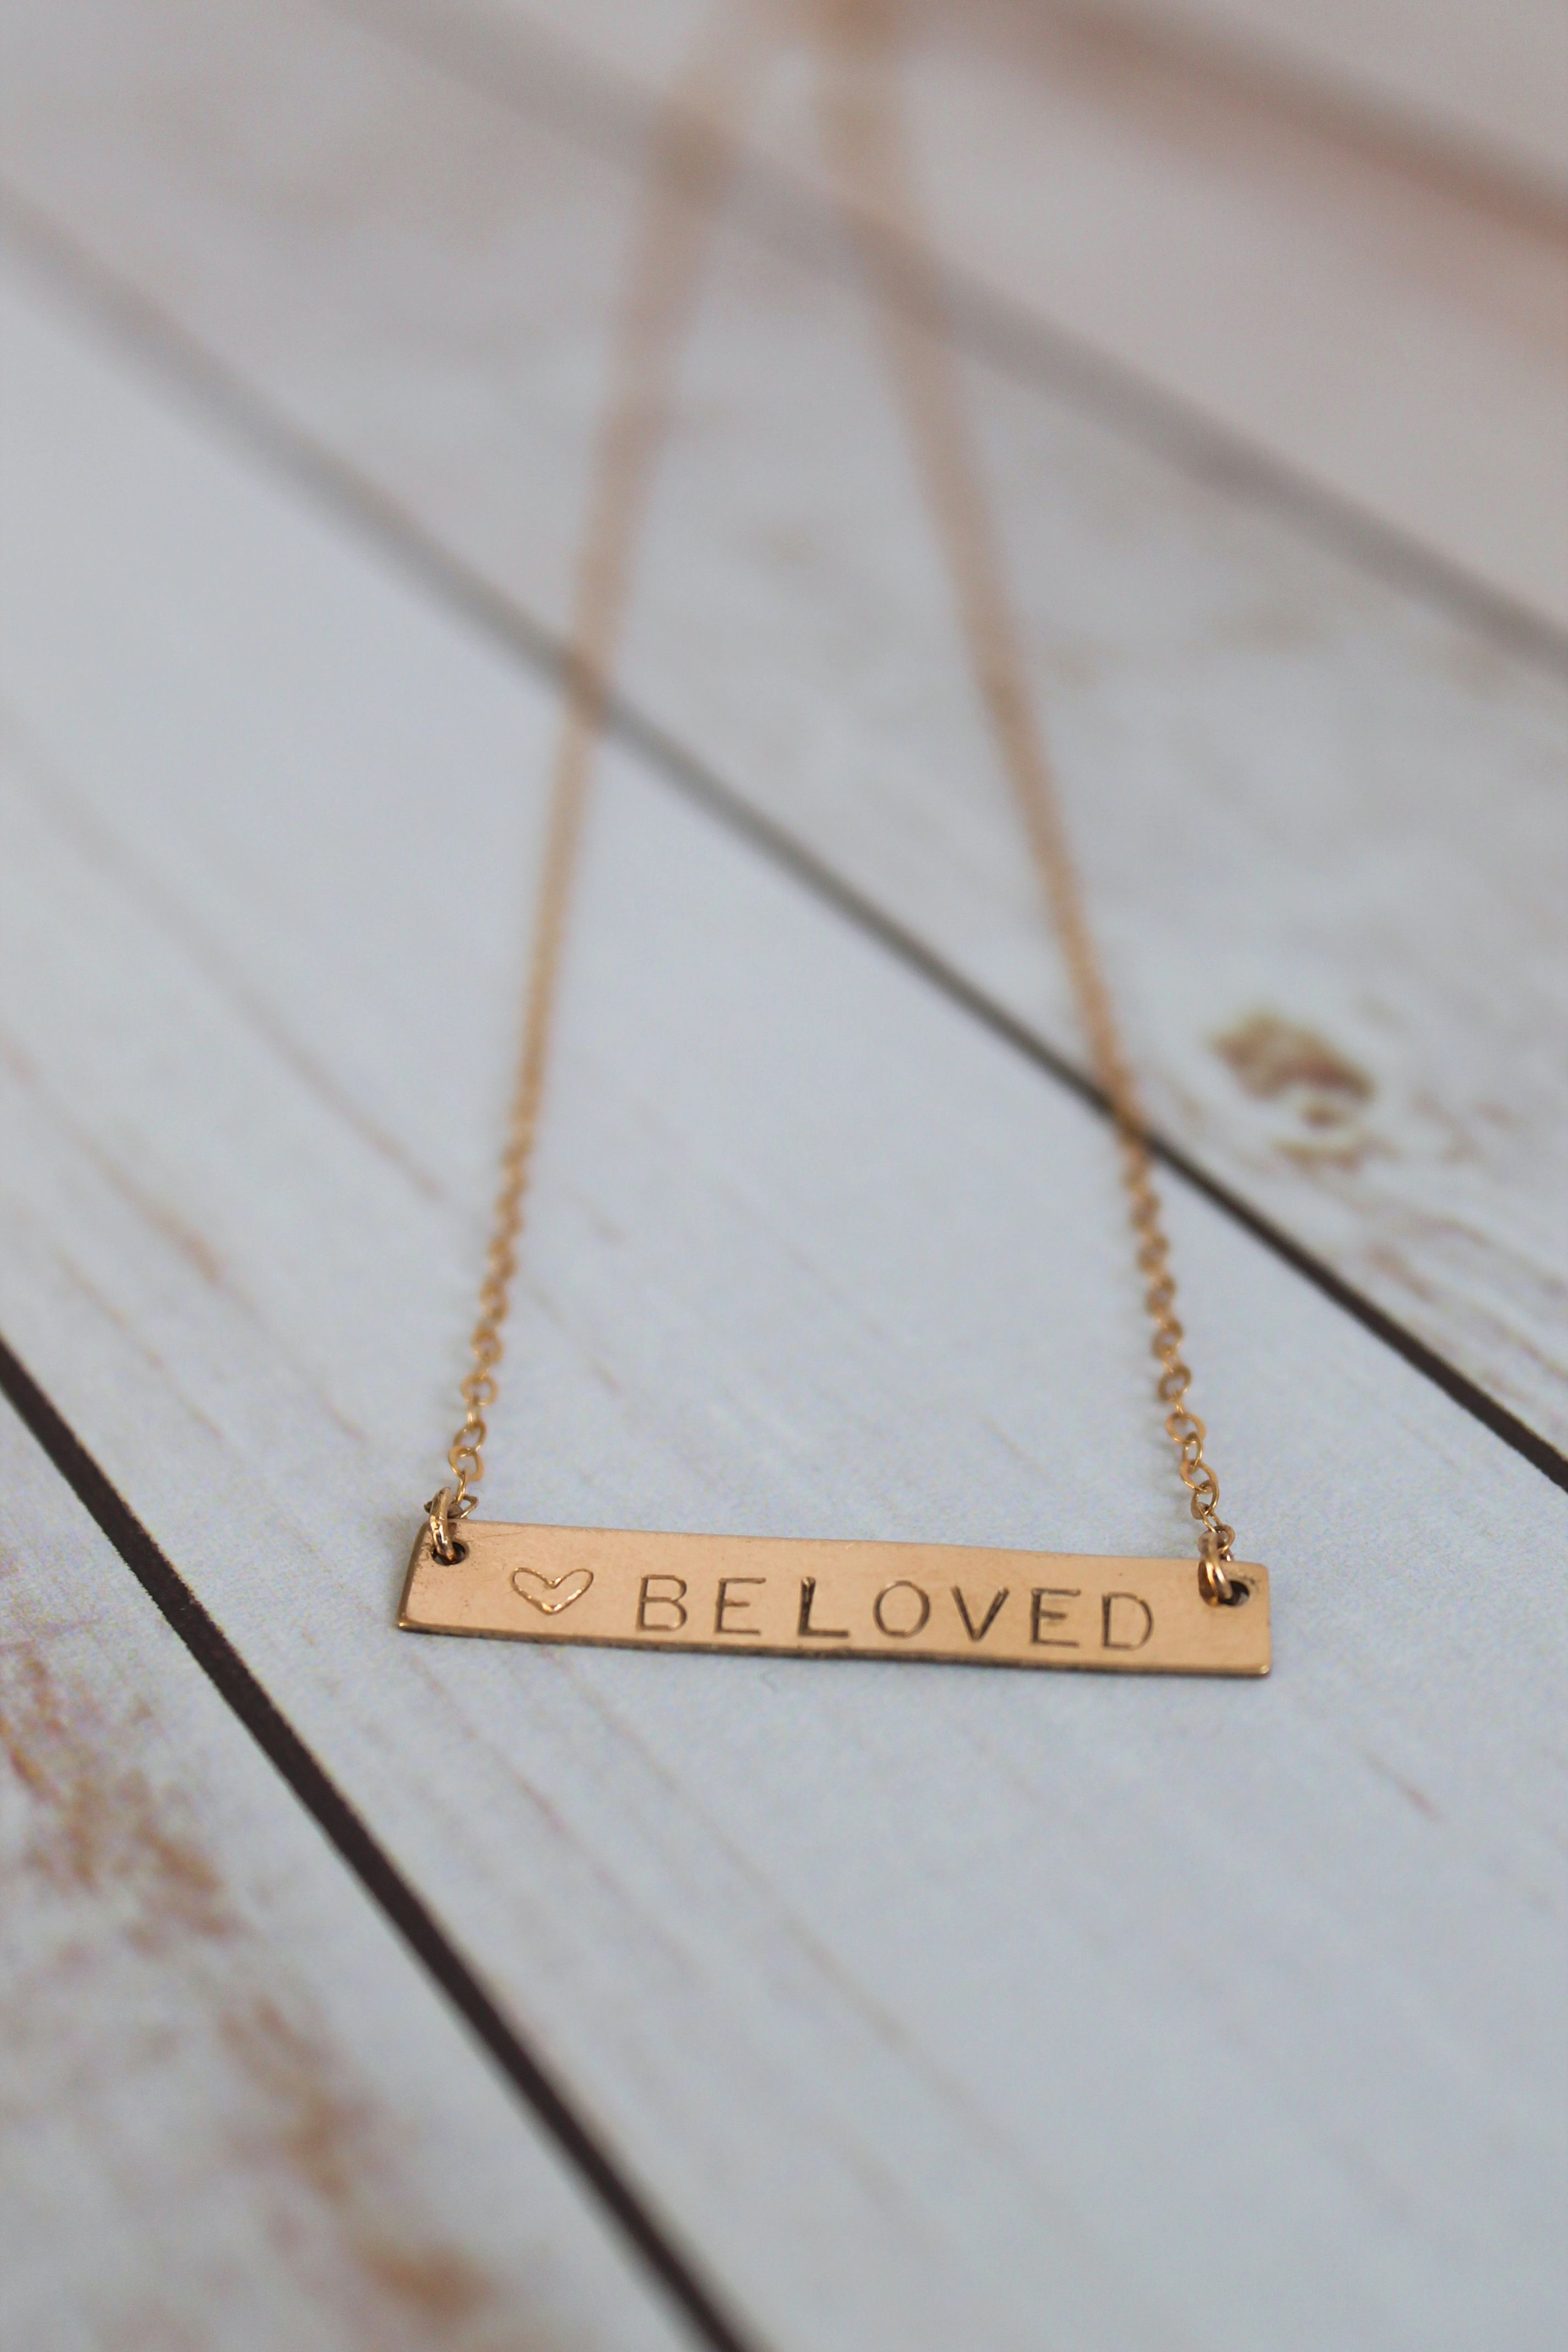 nancy stamped the horizontal products gold necklace hand personalized bar filled original beloved